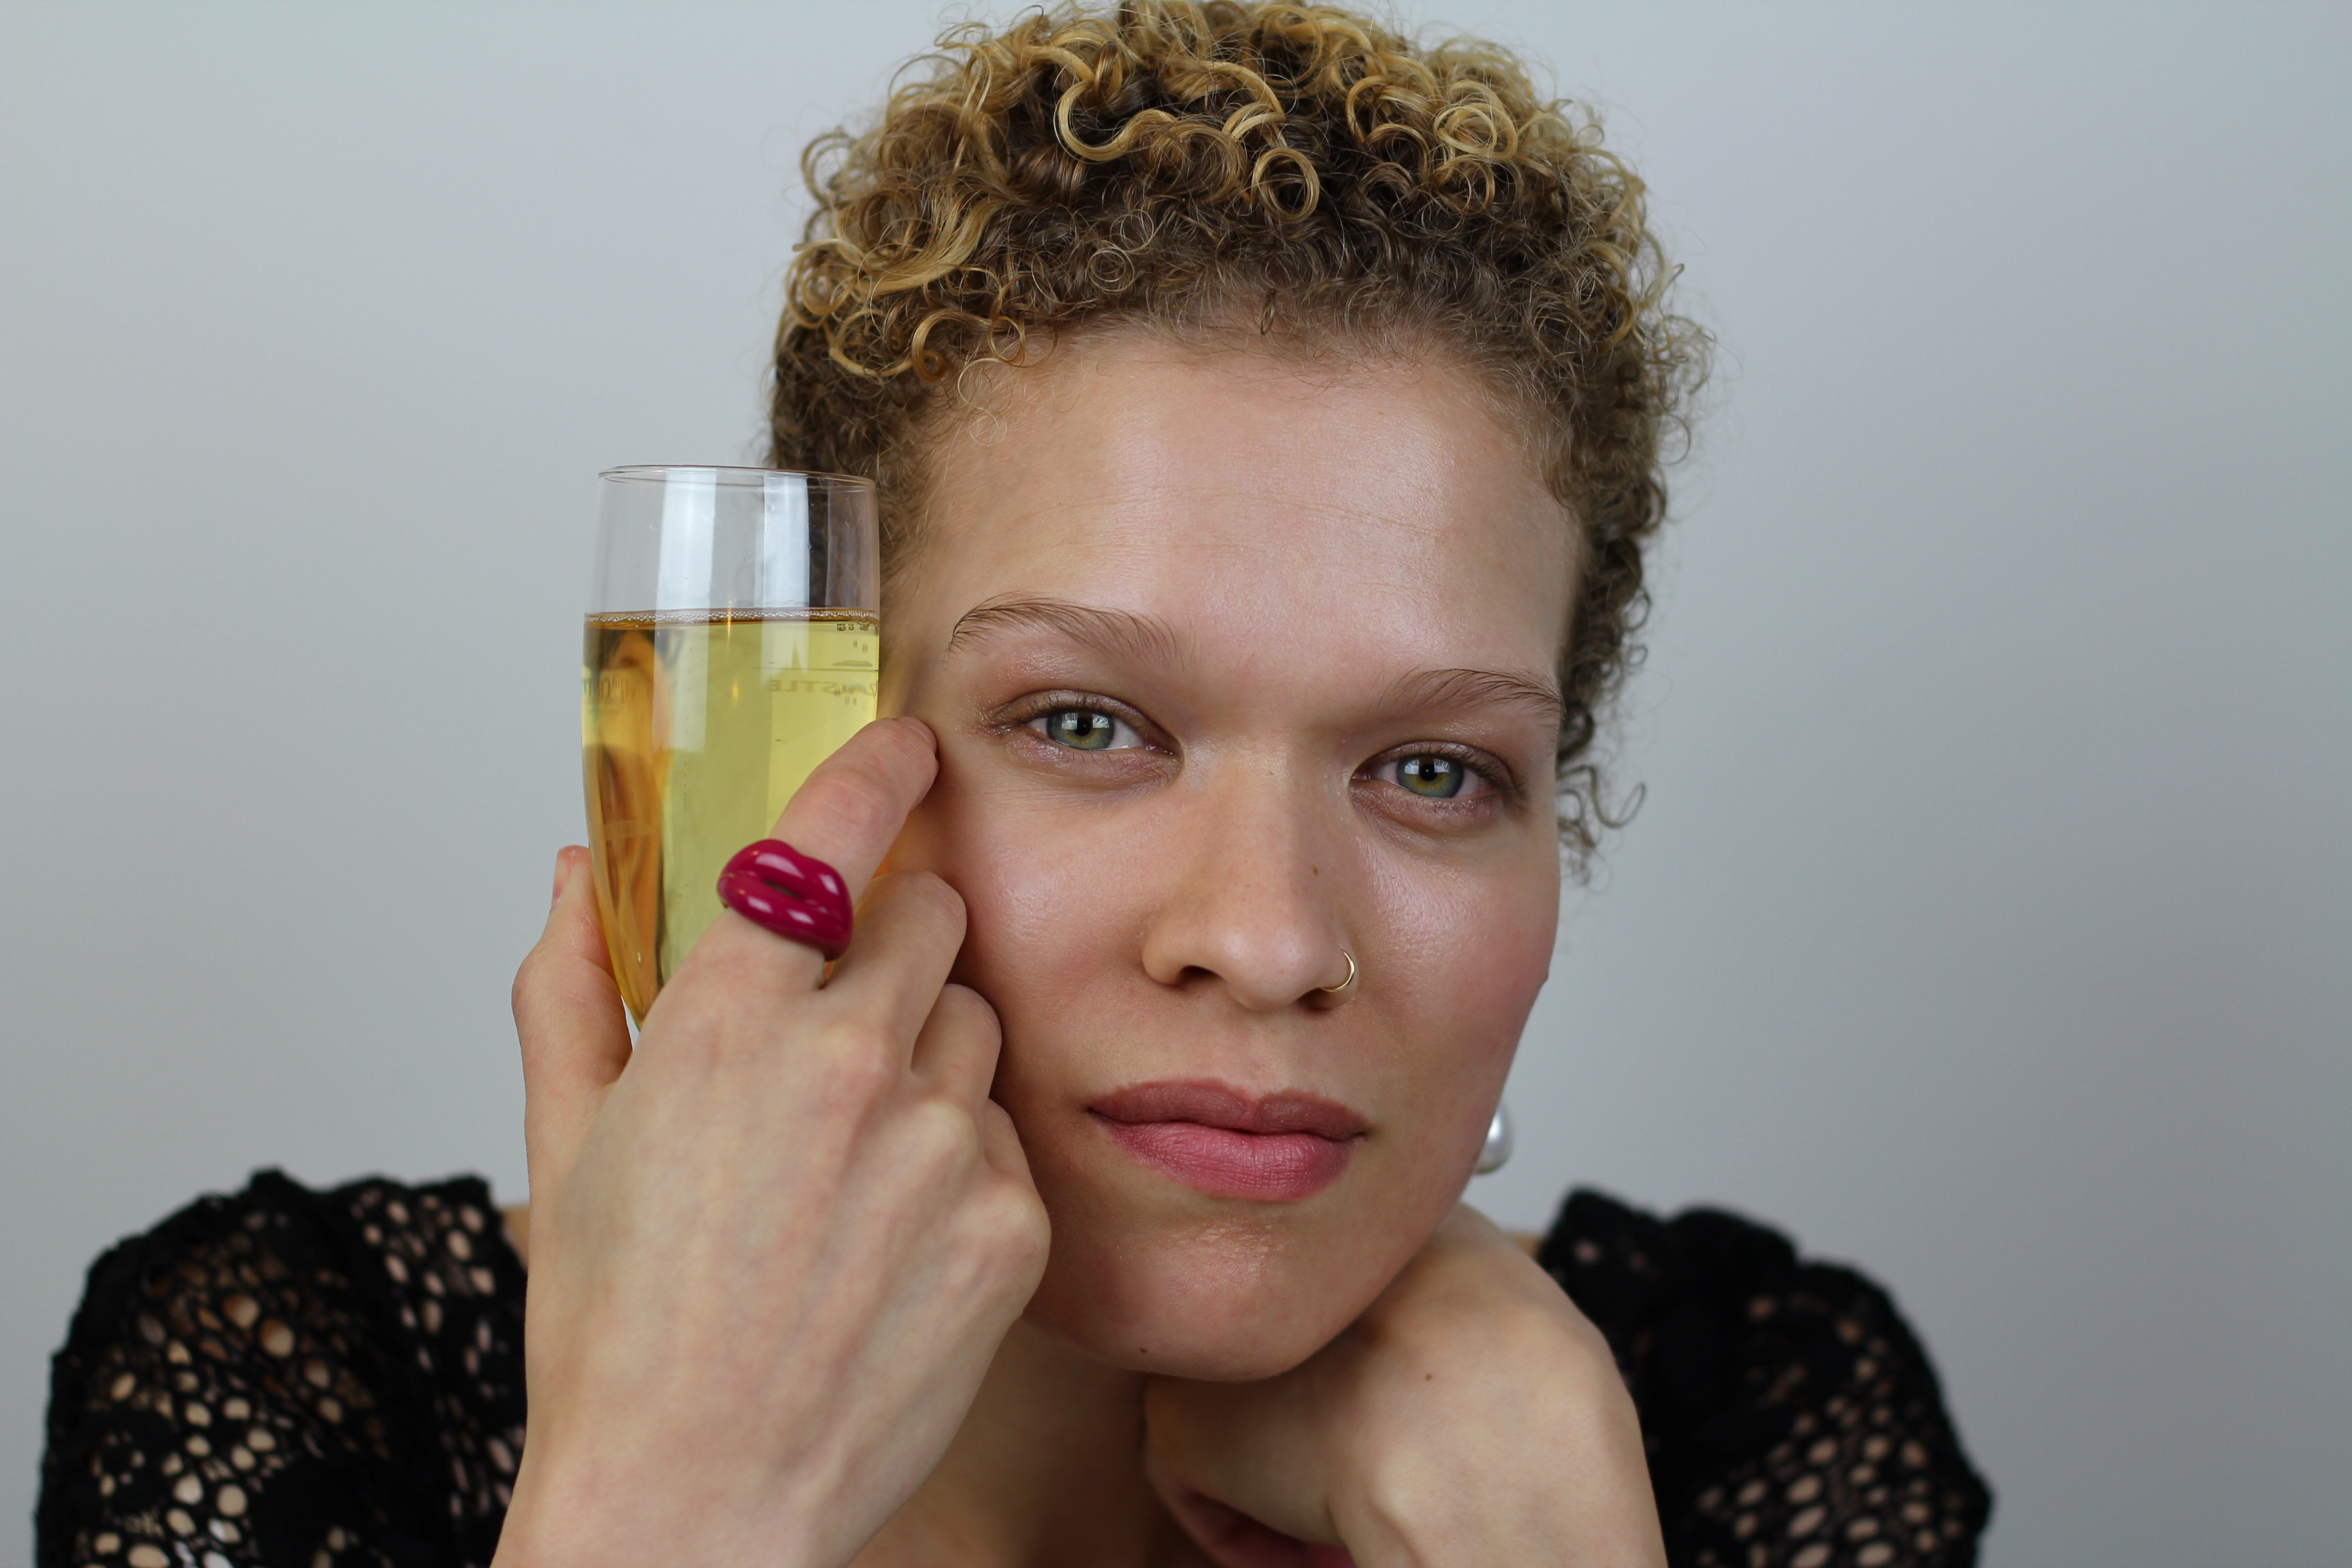 Beauty Fashion 1501 Videos: The Seventh Sphinx » Champagne